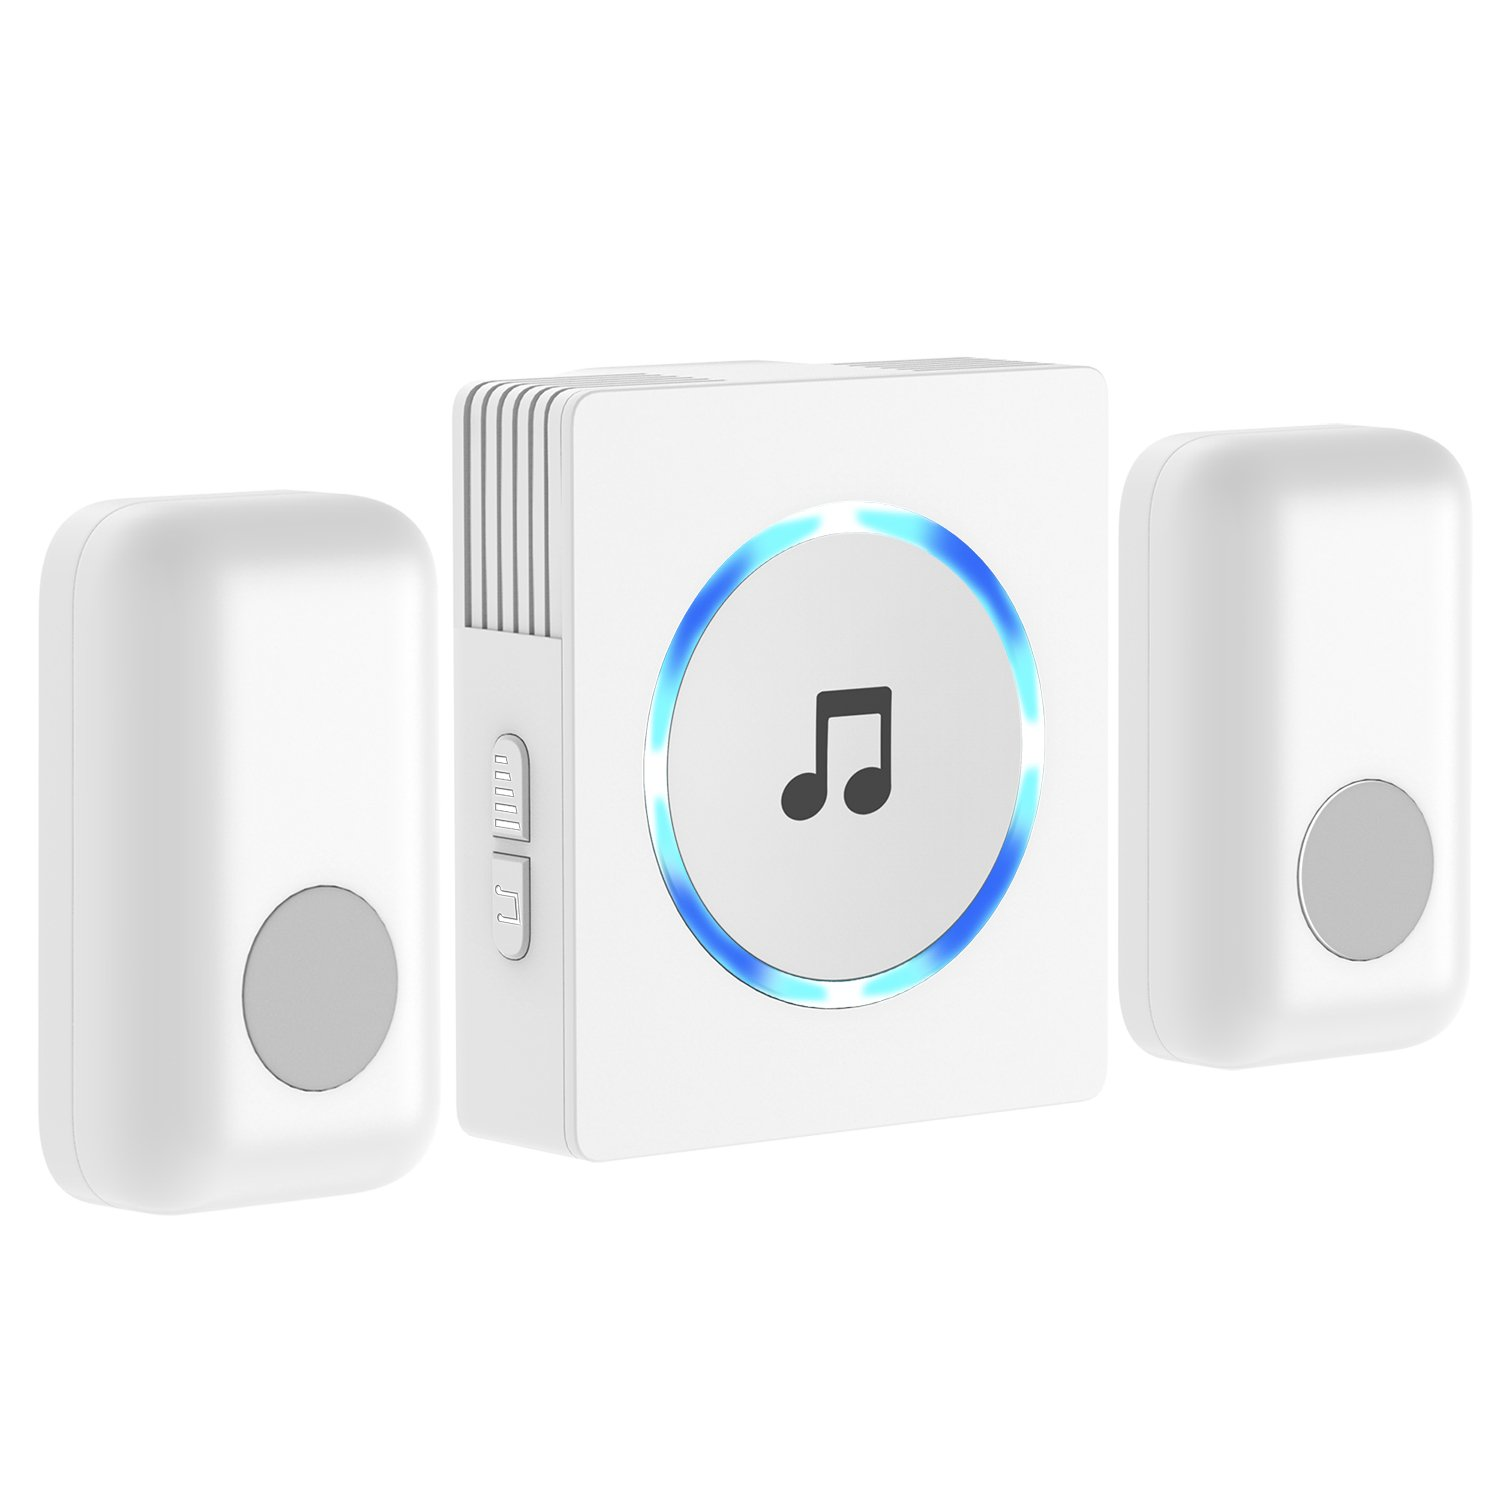 Chime, JETech 2-Push Bell Portable Wireless DoorBell Chime Plug-in Push Button (White) - 2120C